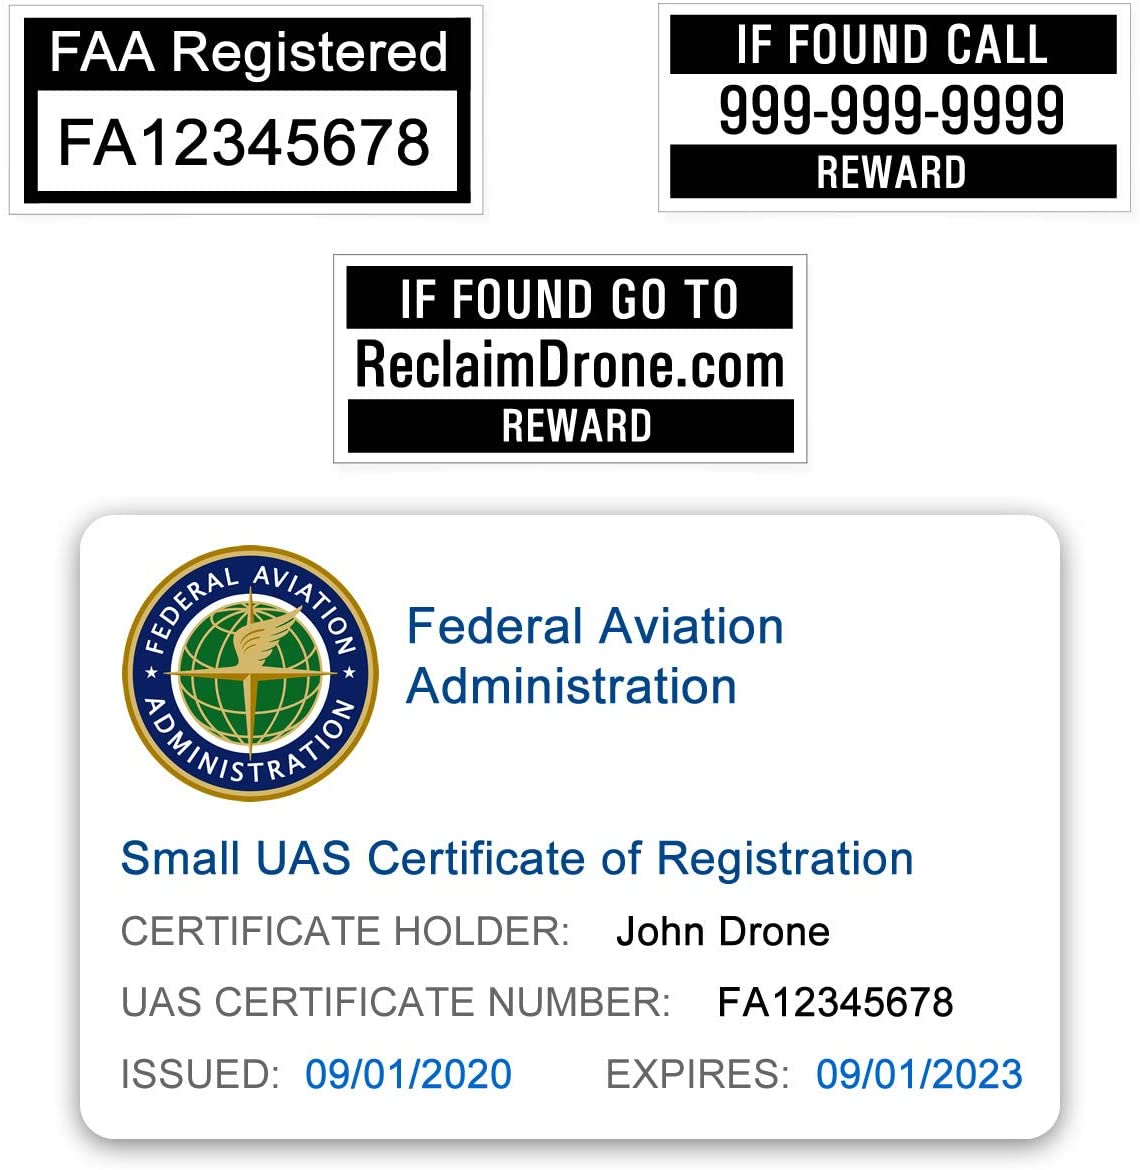 Removable 1.875 x 0.875 FAA Drone Registration LabelsStickersDecals in BLUE Color Set of 3 Tear-Proof Water-Resistant